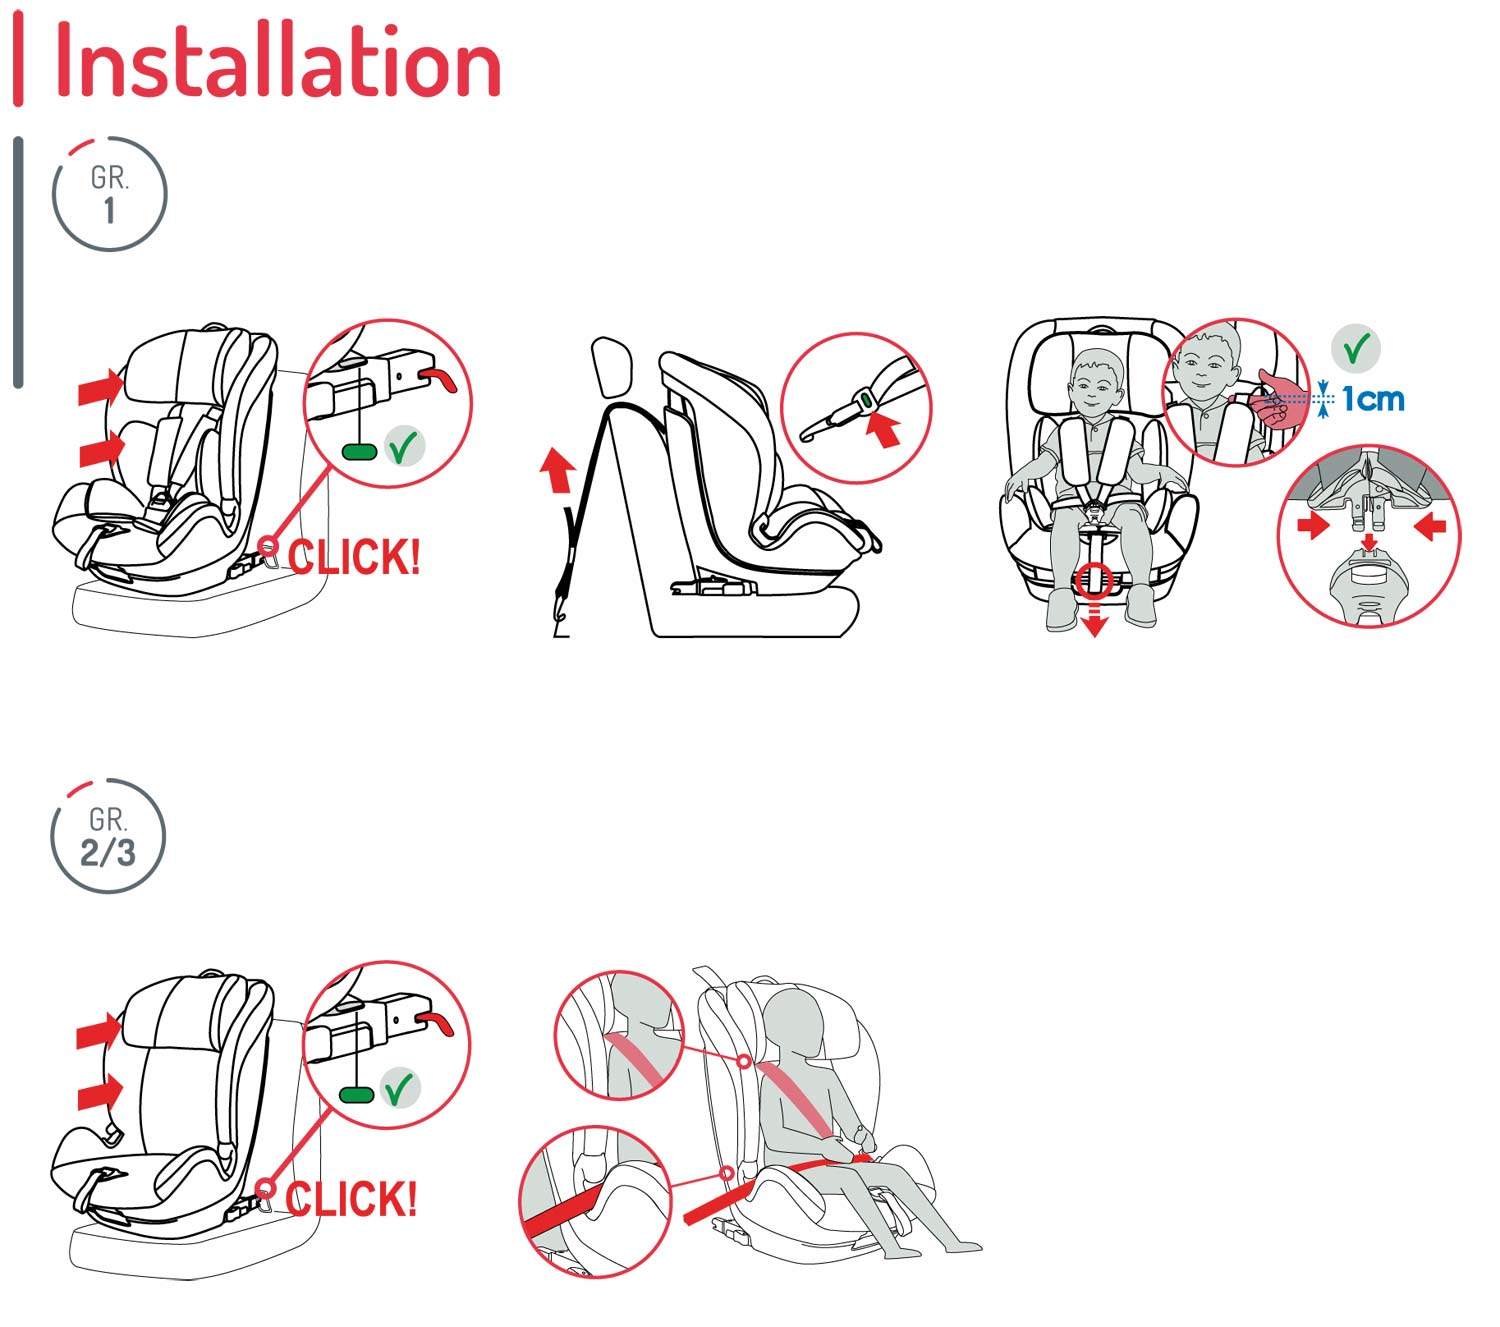 Flow installation guide